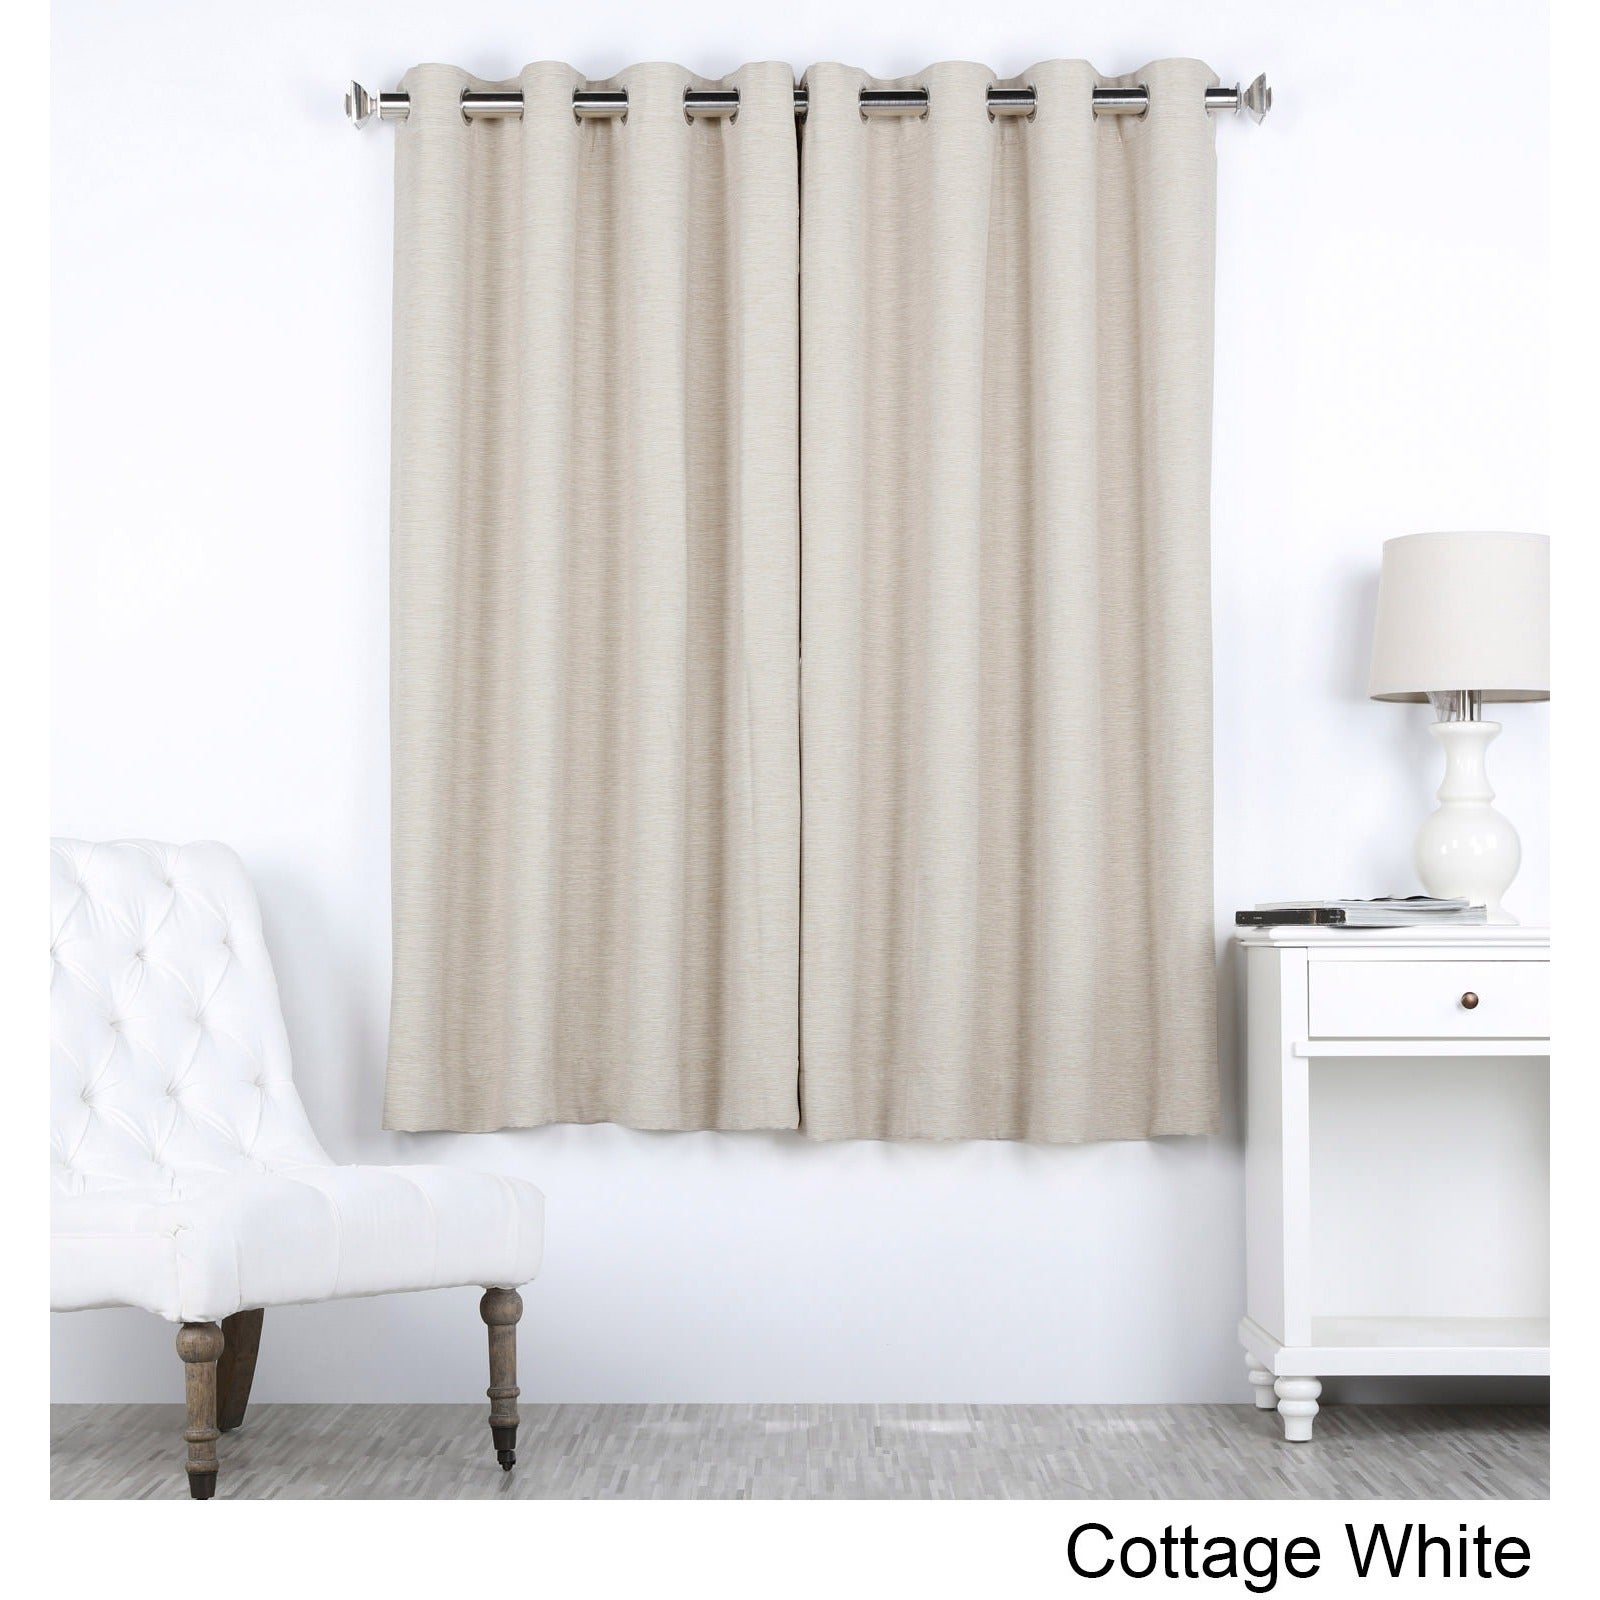 redglobalmx lace customize tab top linen full size white design curtain country astounding french curtains with of cotton org image blackout eyelets